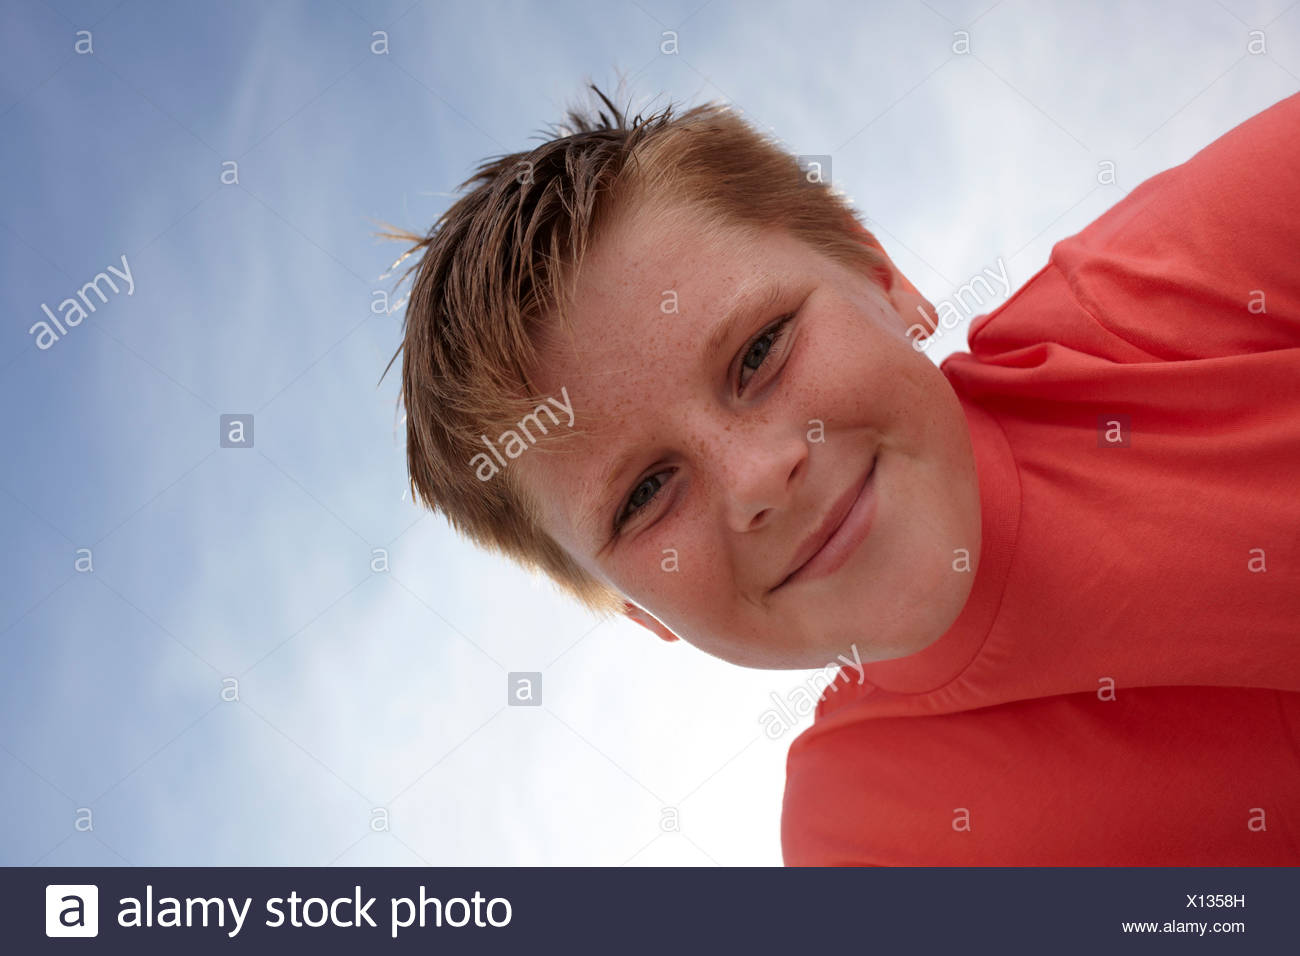 Boy looking at camera, viewed from below - Stock Image